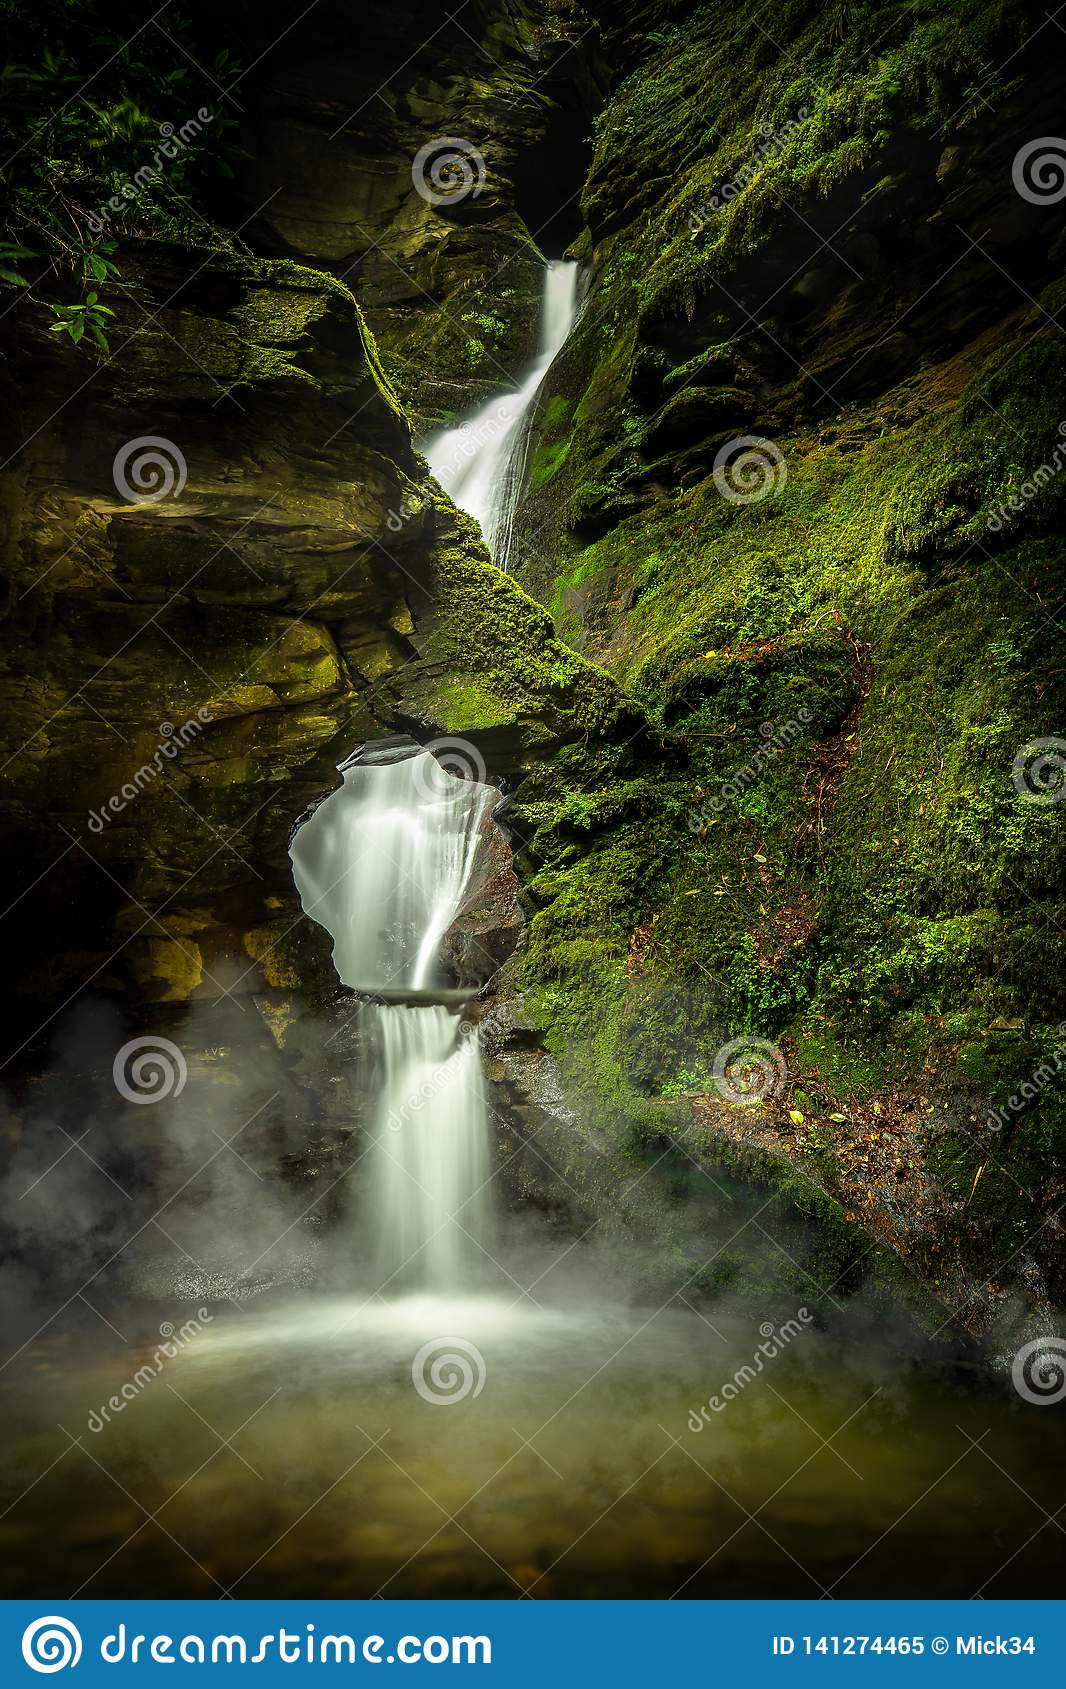 Mystical Waterfall, with Mist and Moss, St Nectans Glen, North Cornwall